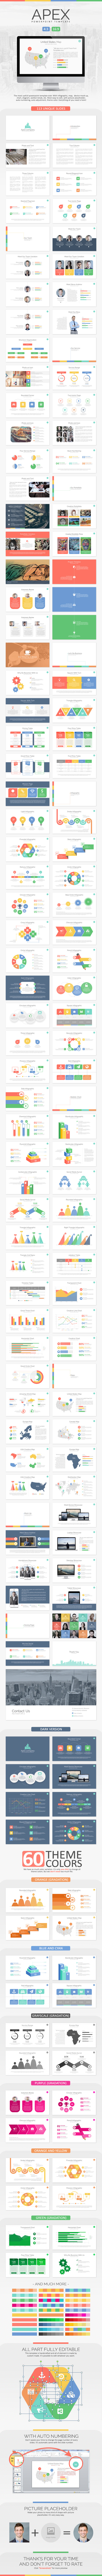 GraphicRiver Apex Multipurpose Powerpoint Presentation Template 10946530